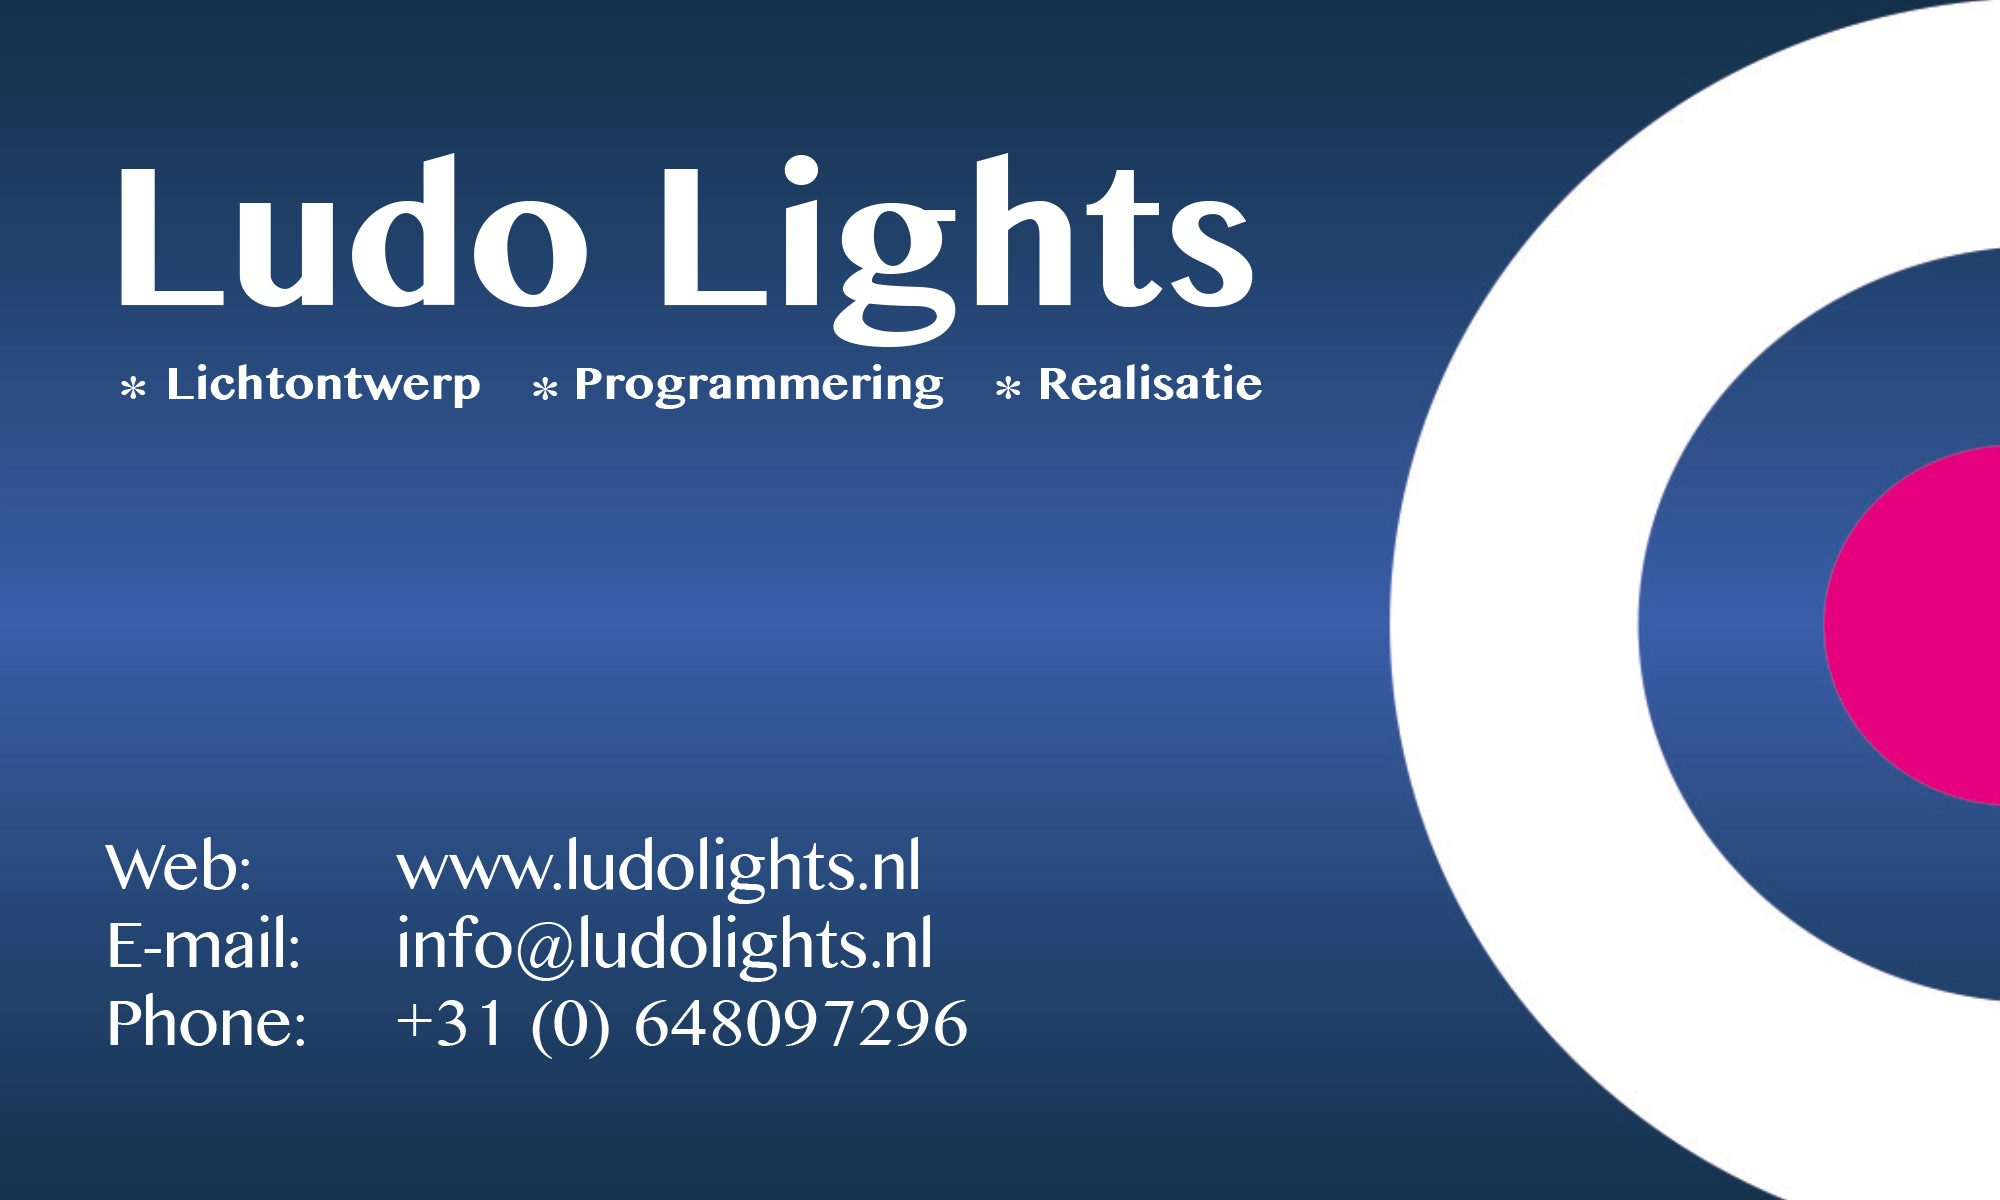 Ludo Lights